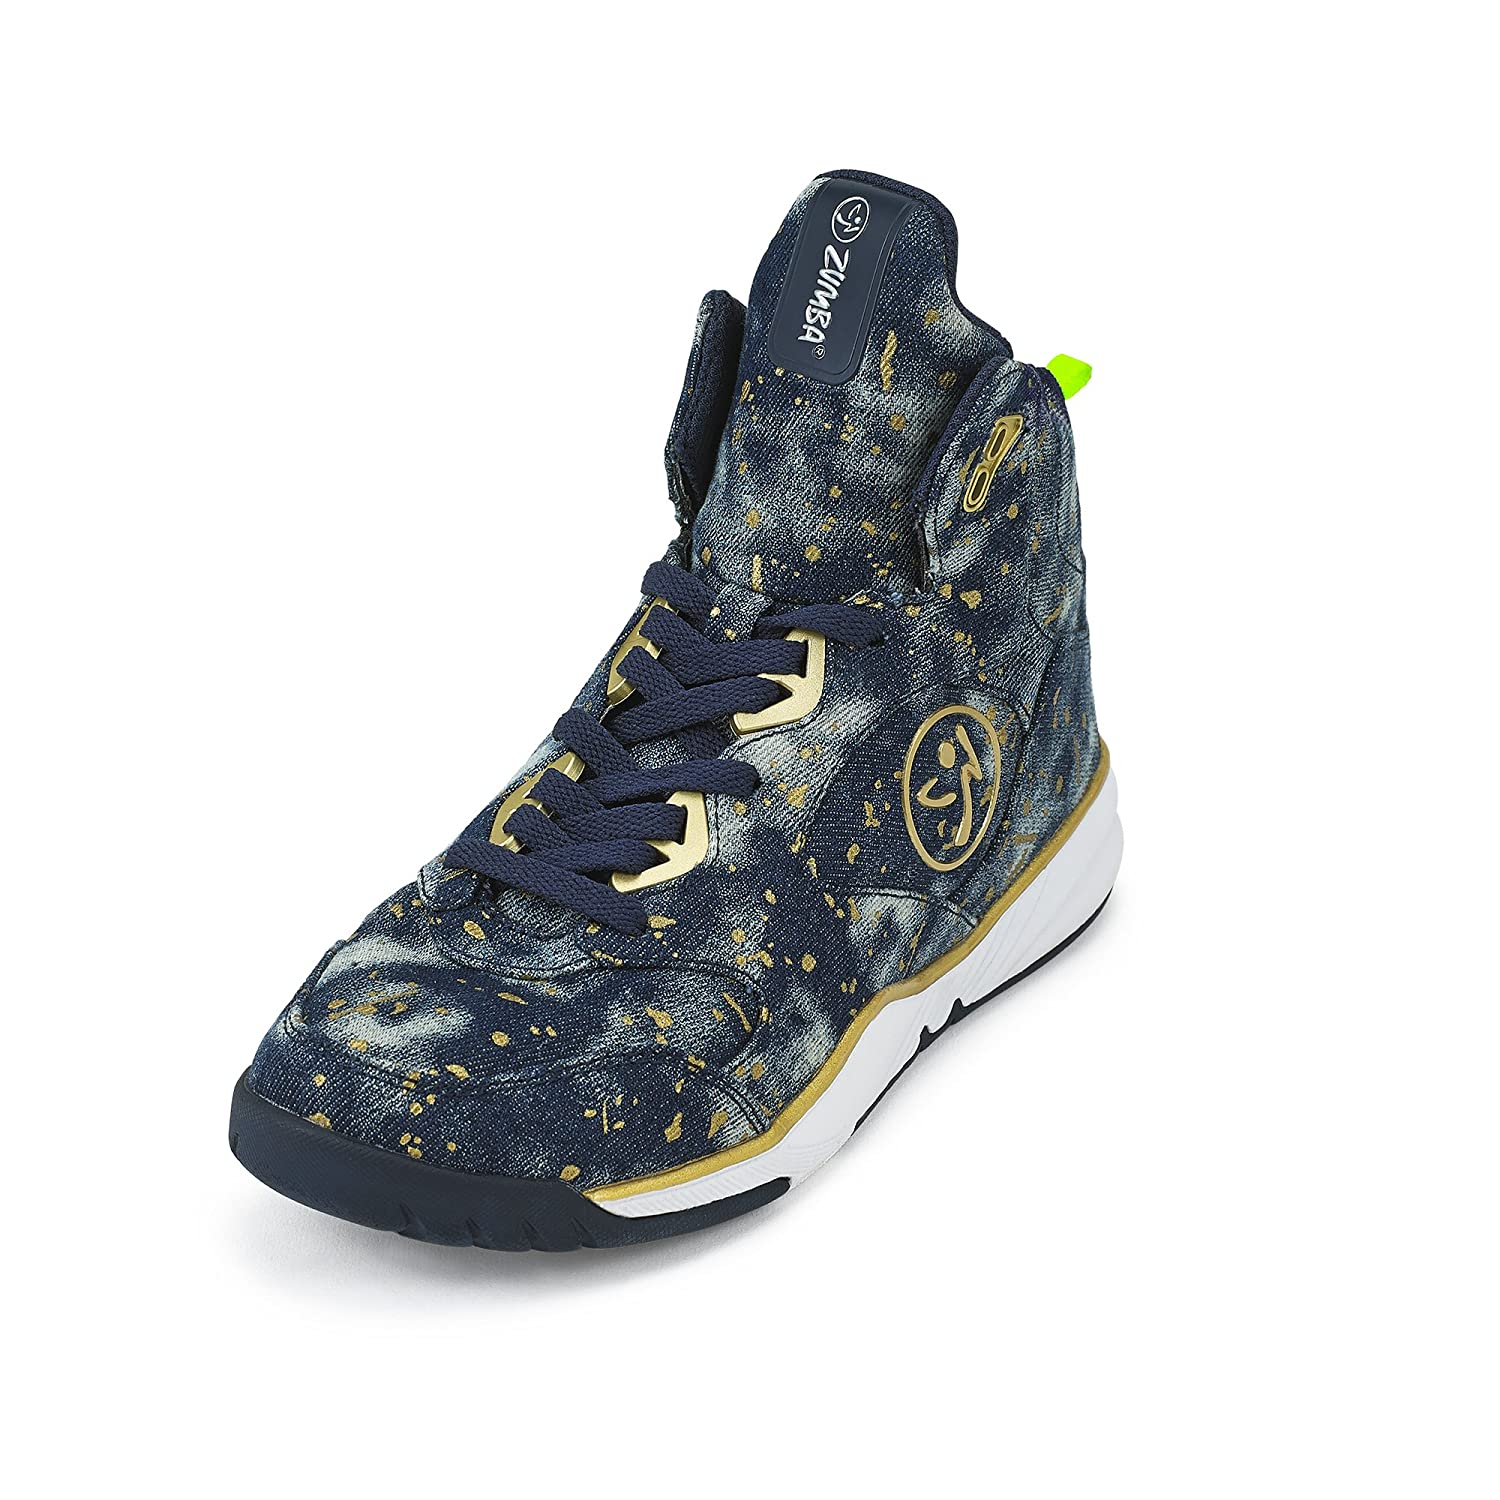 Zumba Women's Energy Boom High Top Dance Workout Sneakers with Enhanced Comfort Support B0743WJZTY 6 B(M) US|Paint Splattered Denim